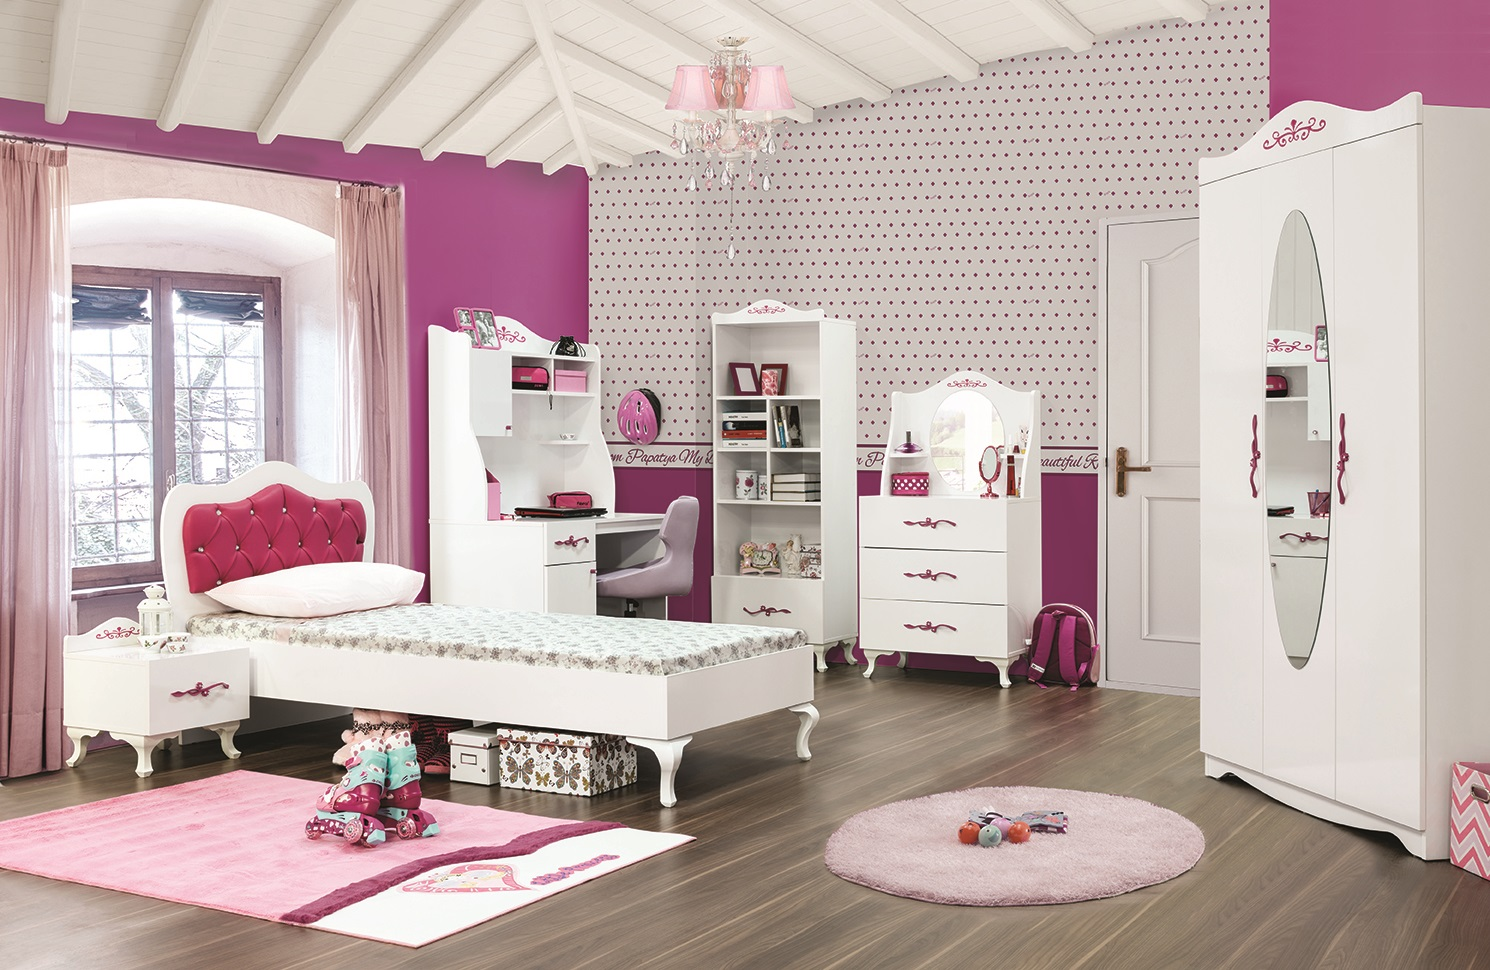 m dchenzimmer pia papatya komplettzimmer weiss pink prinzessin pia set. Black Bedroom Furniture Sets. Home Design Ideas